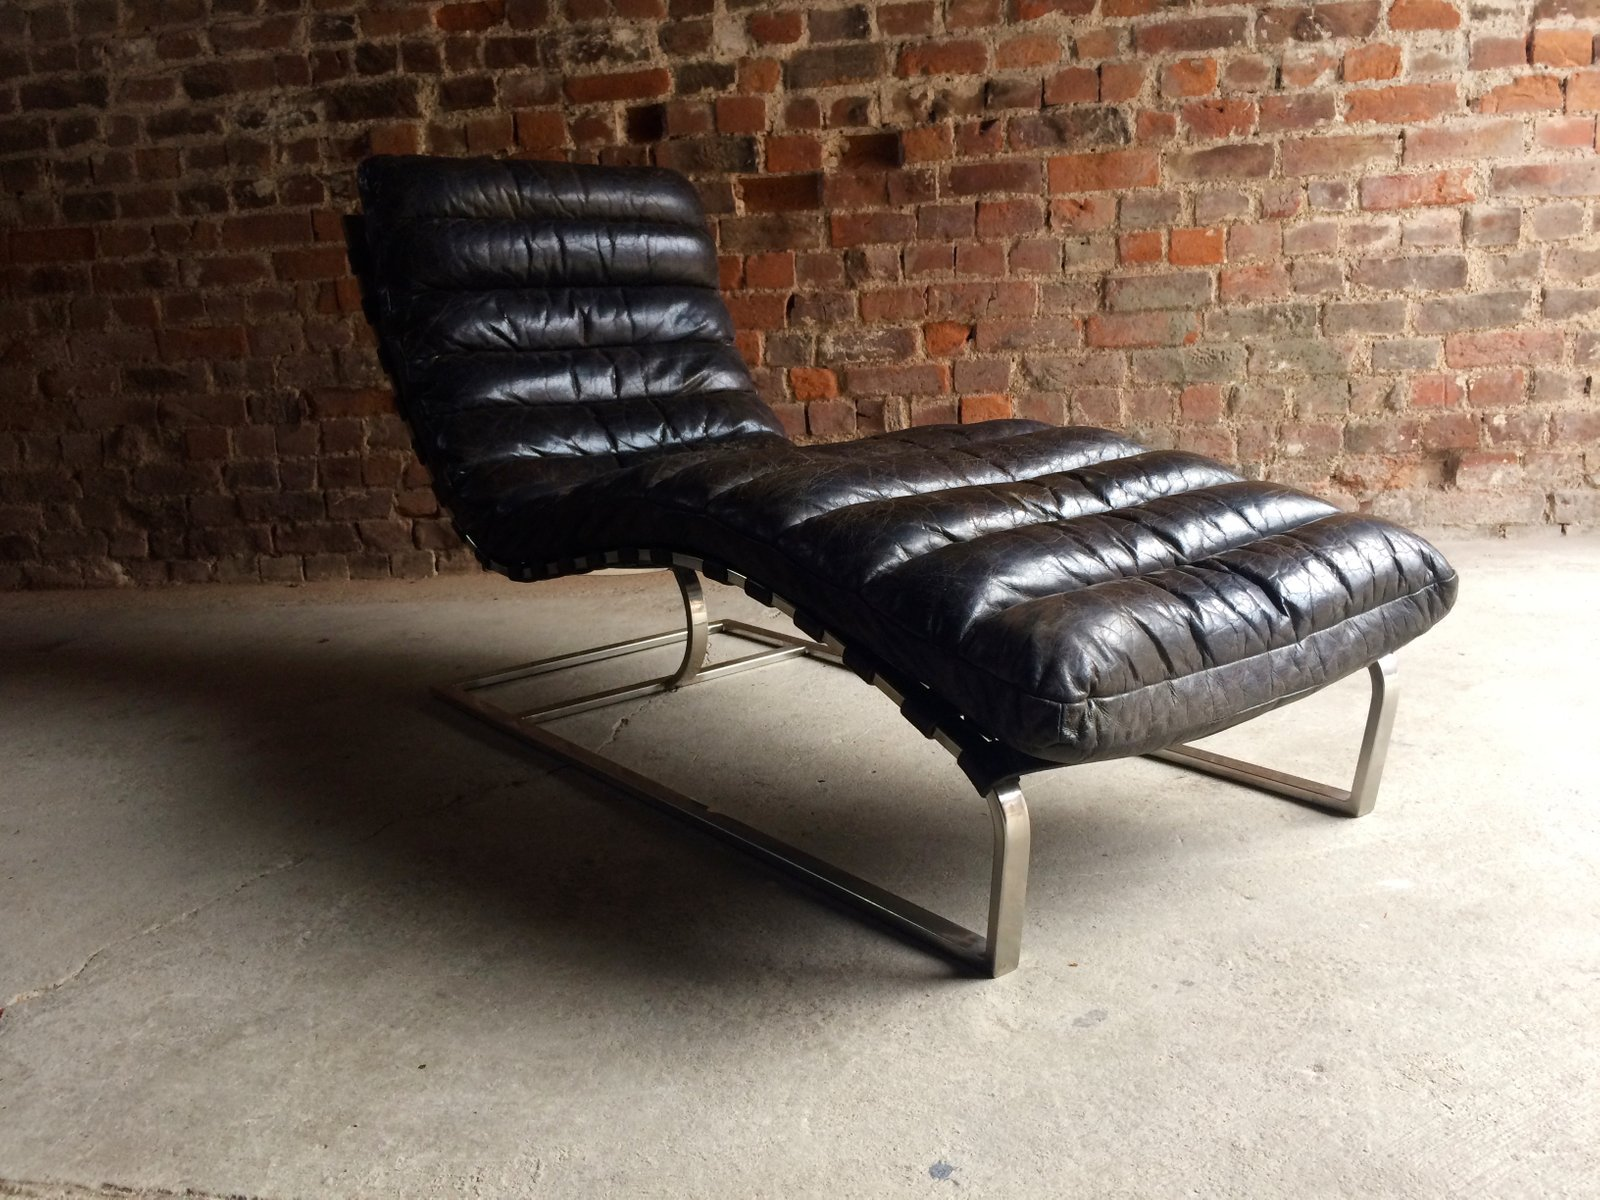 Vintage Mid Century Leather Chaise Lounge from Oviedo for sale at